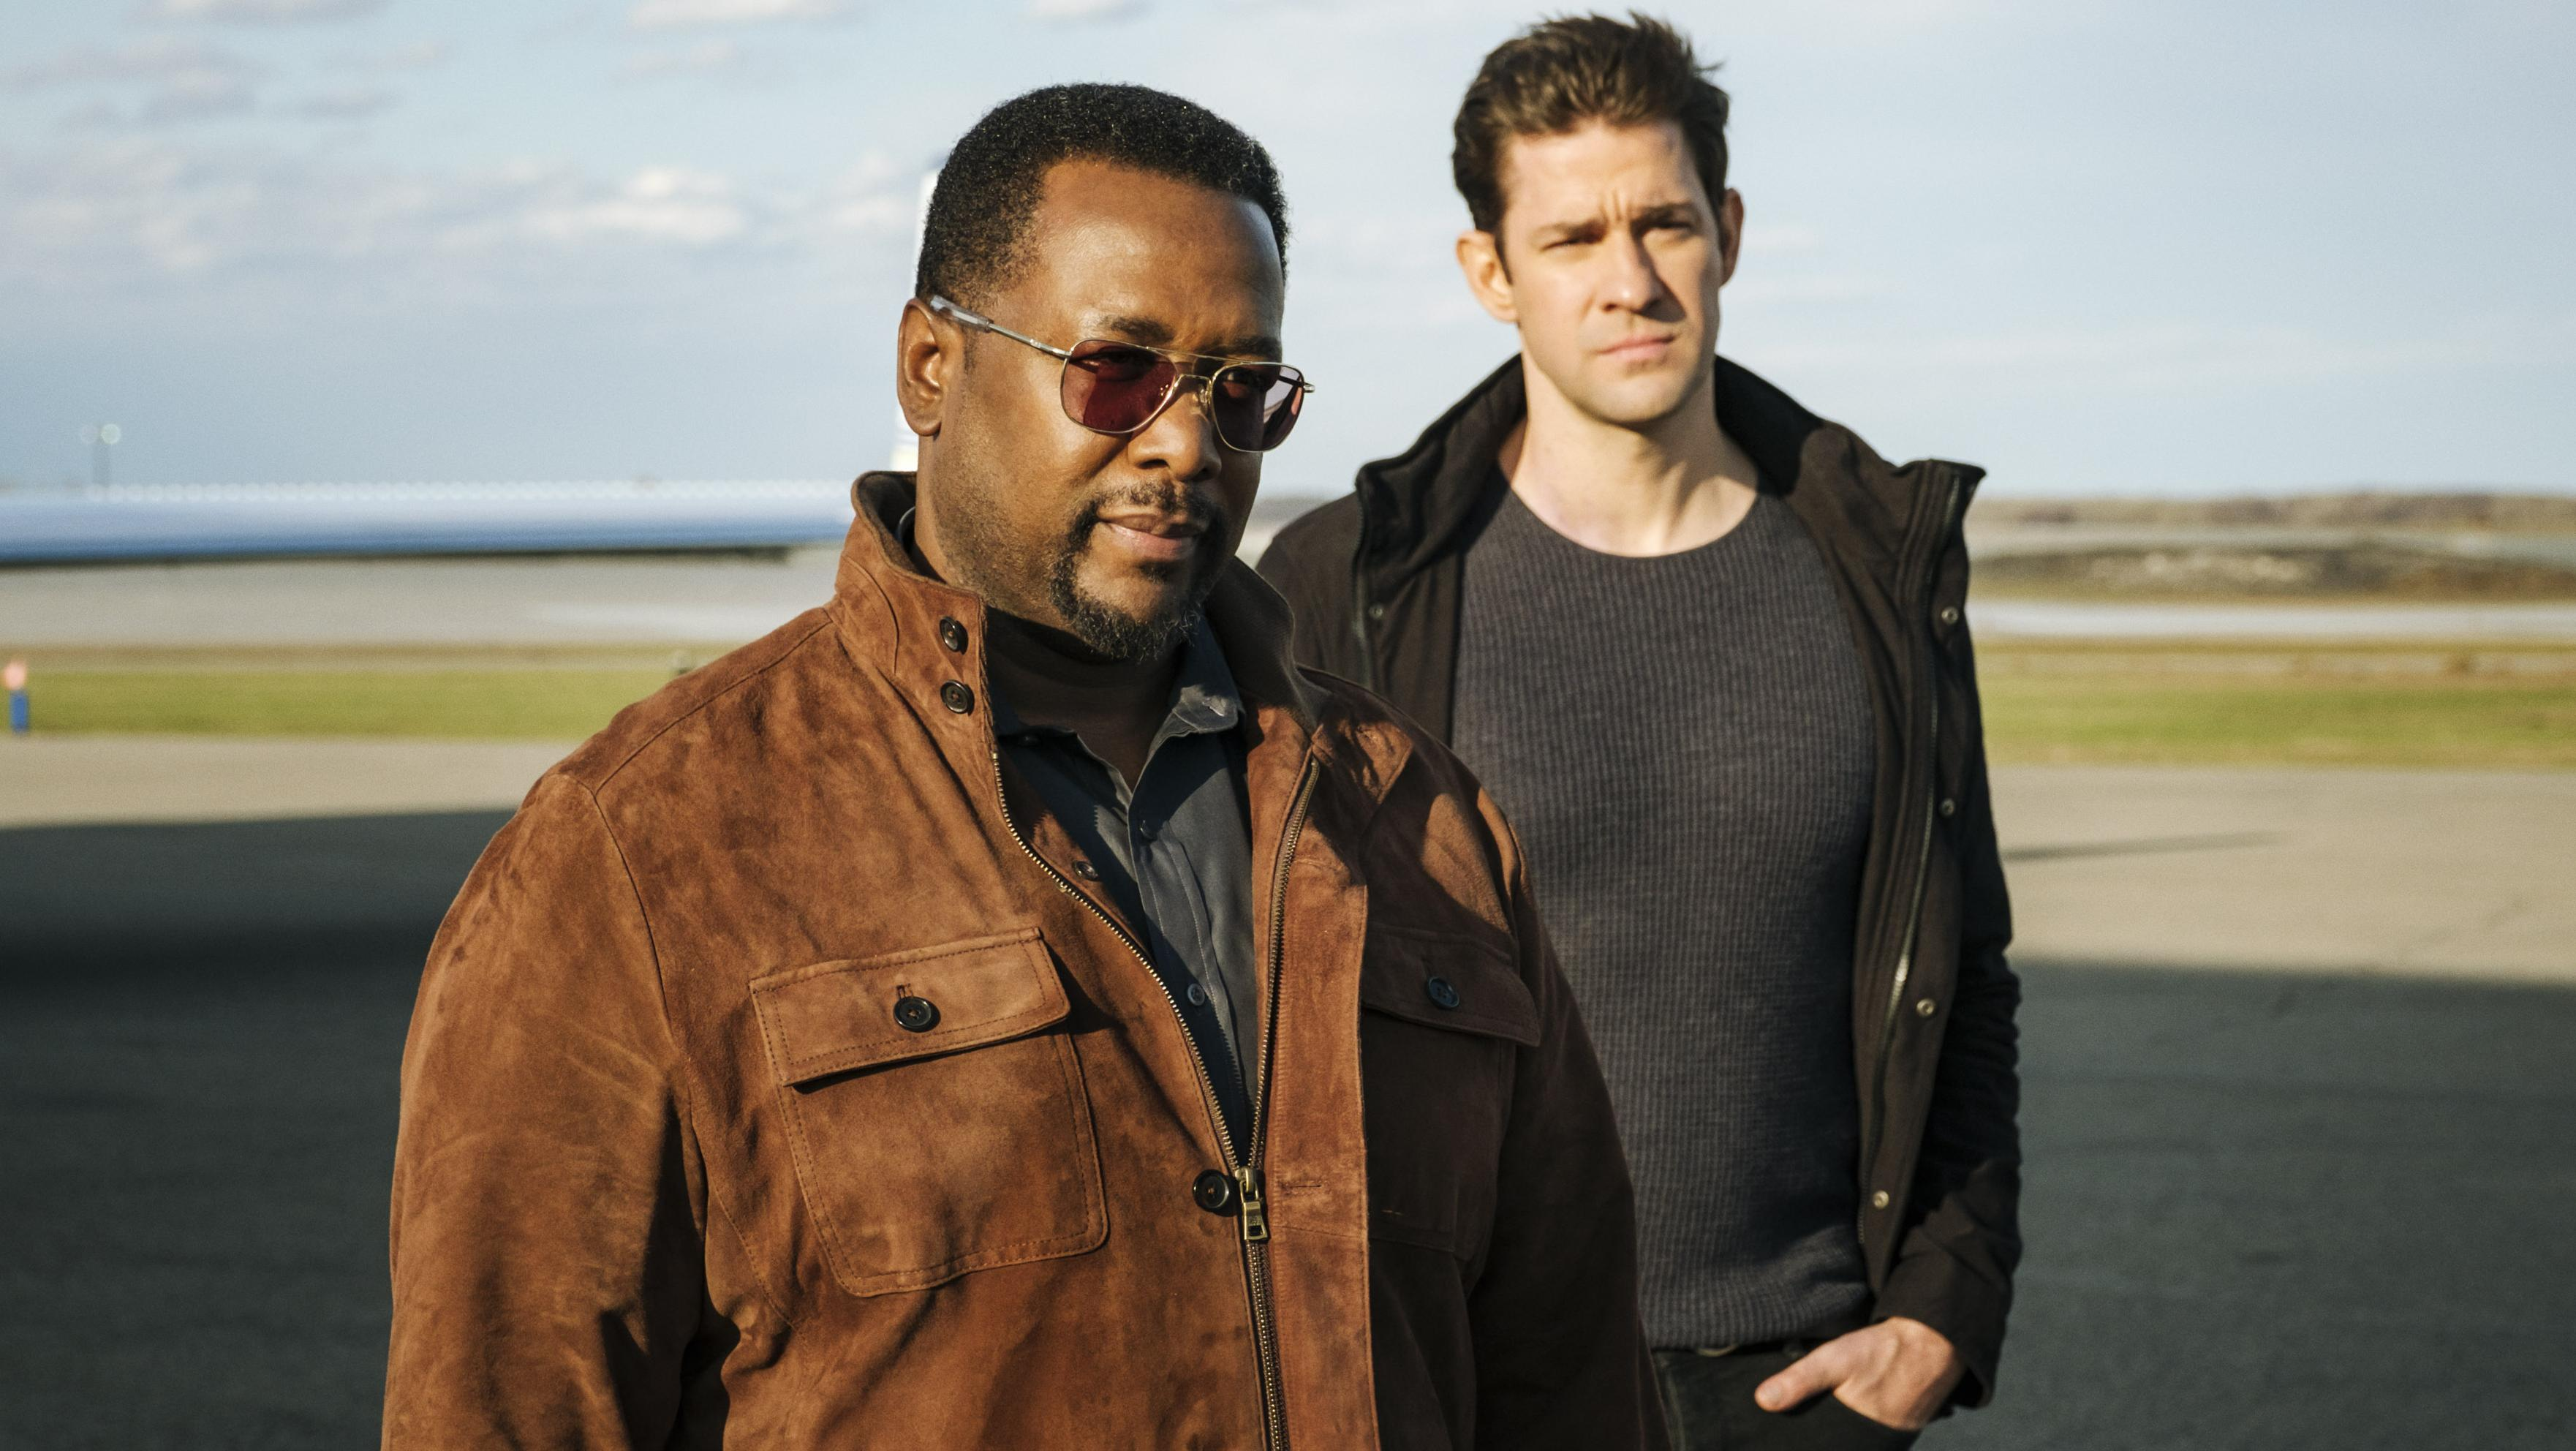 Jack Ryan Season 3 Release Date, Plot Spoilers James Greer to get Promotion and help Jack from Office